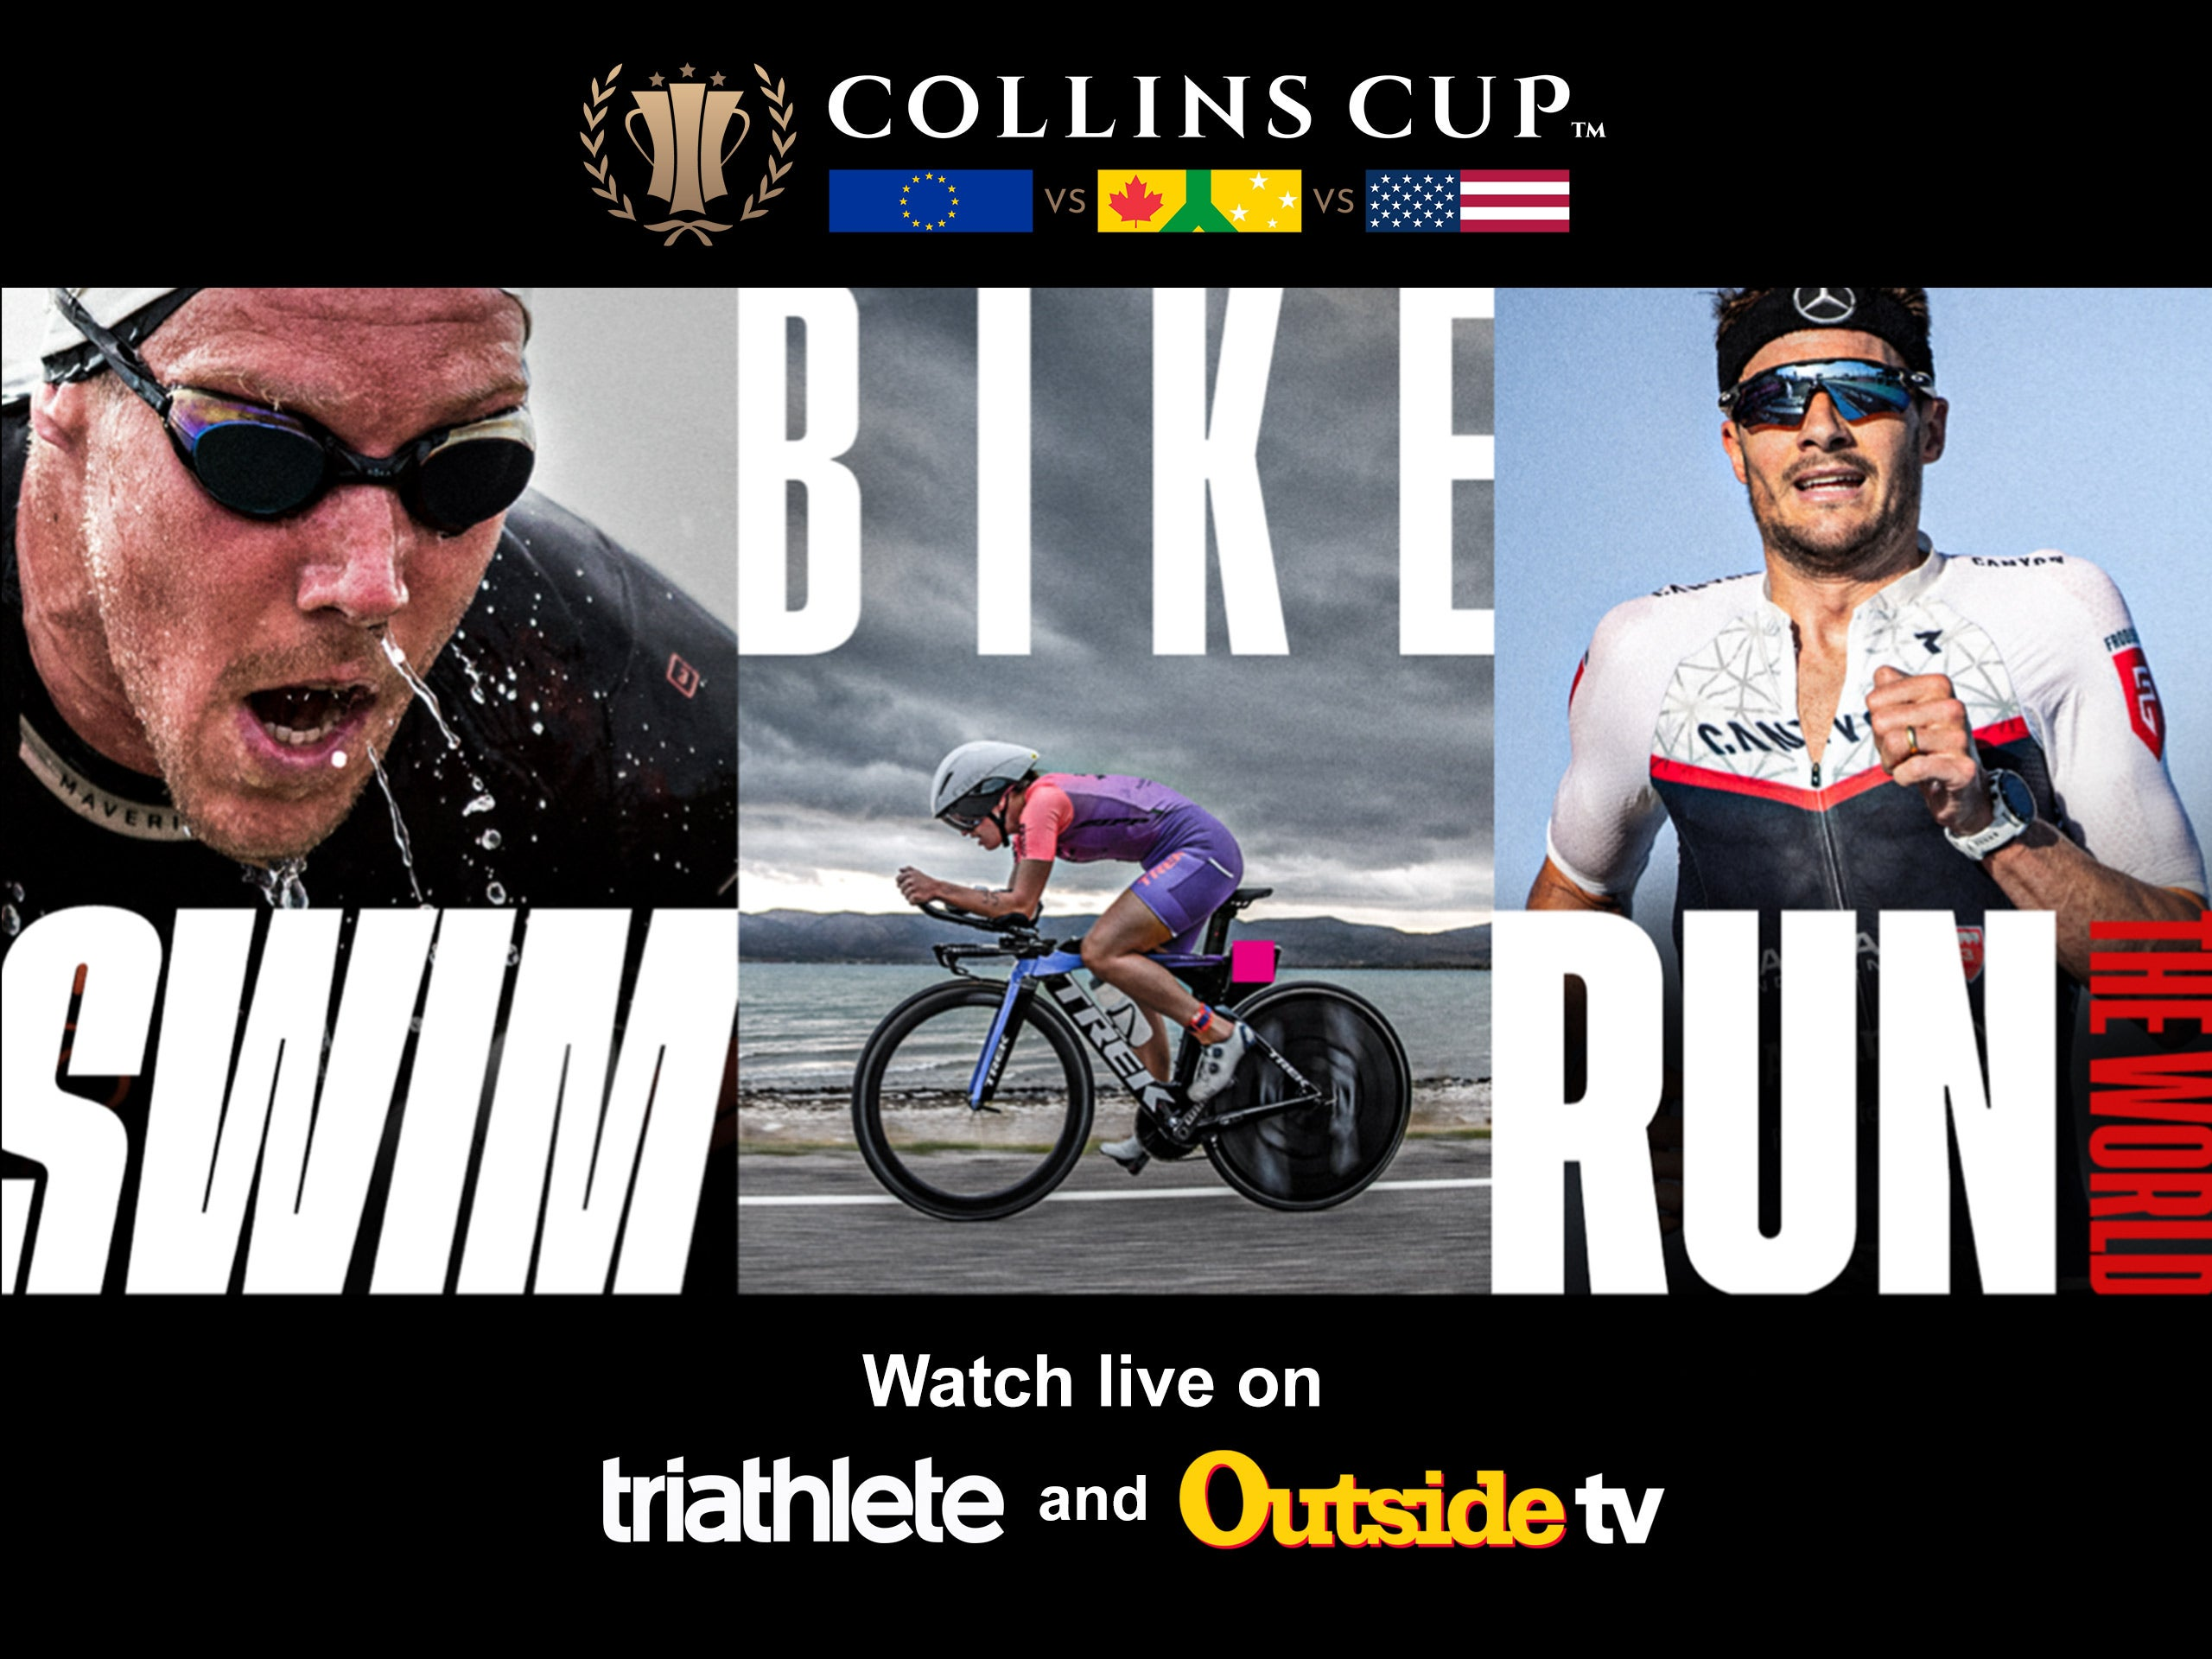 how to watch the collins cup